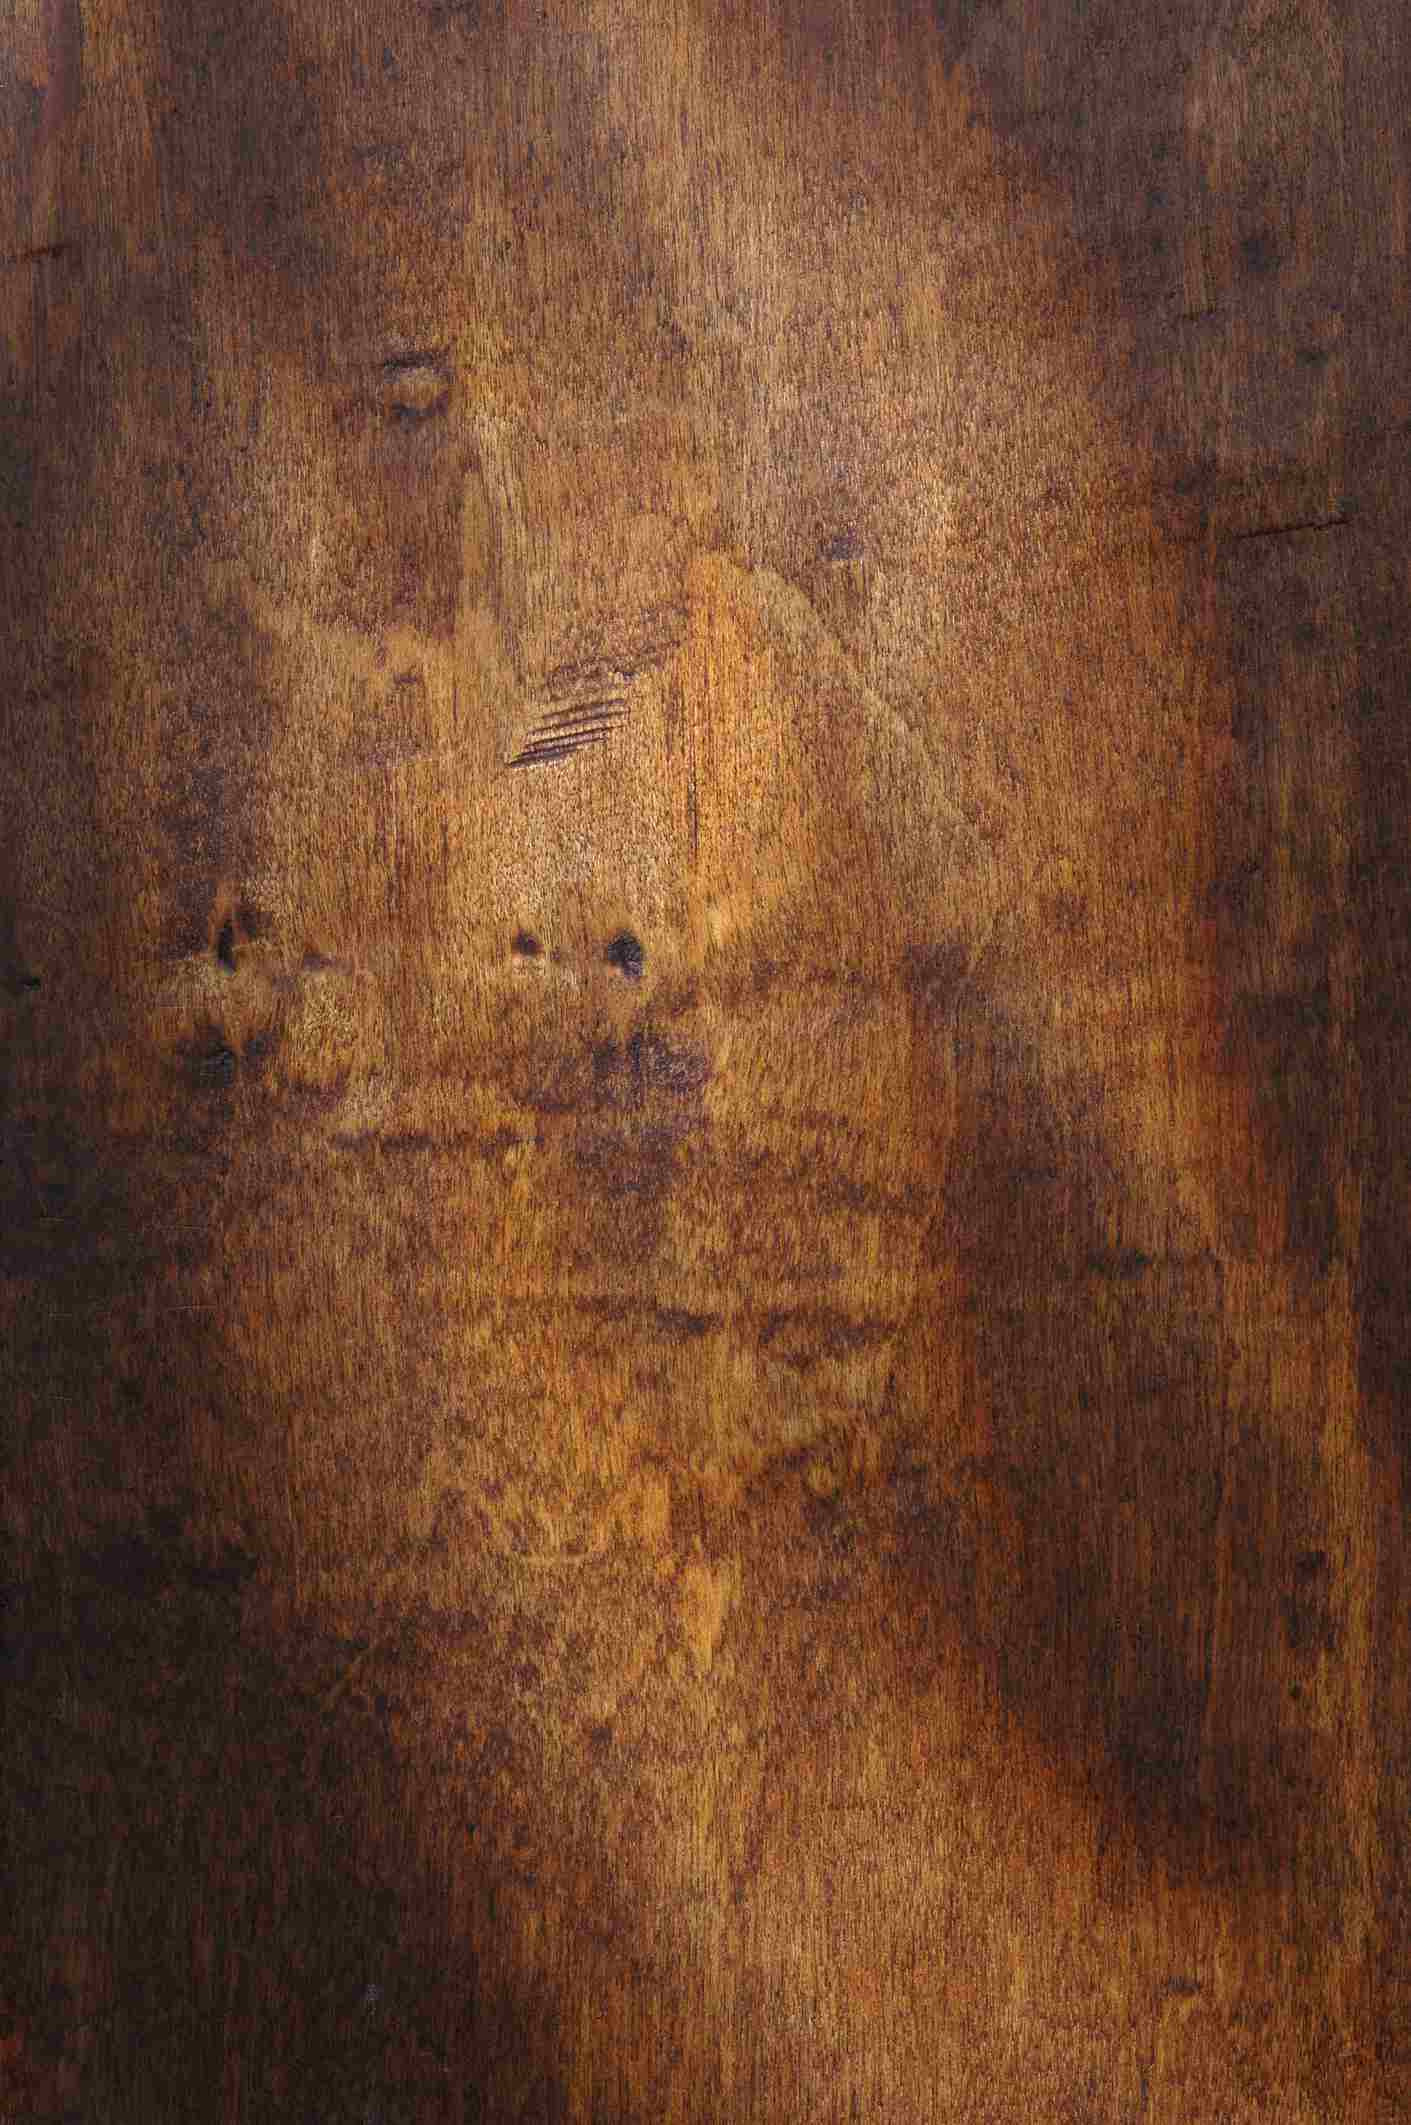 harvest hickory hardwood flooring of hardwood species for spindle turning the best wood with regard to smokey hardwood 172318827 584f11c53df78c491e38f6fb